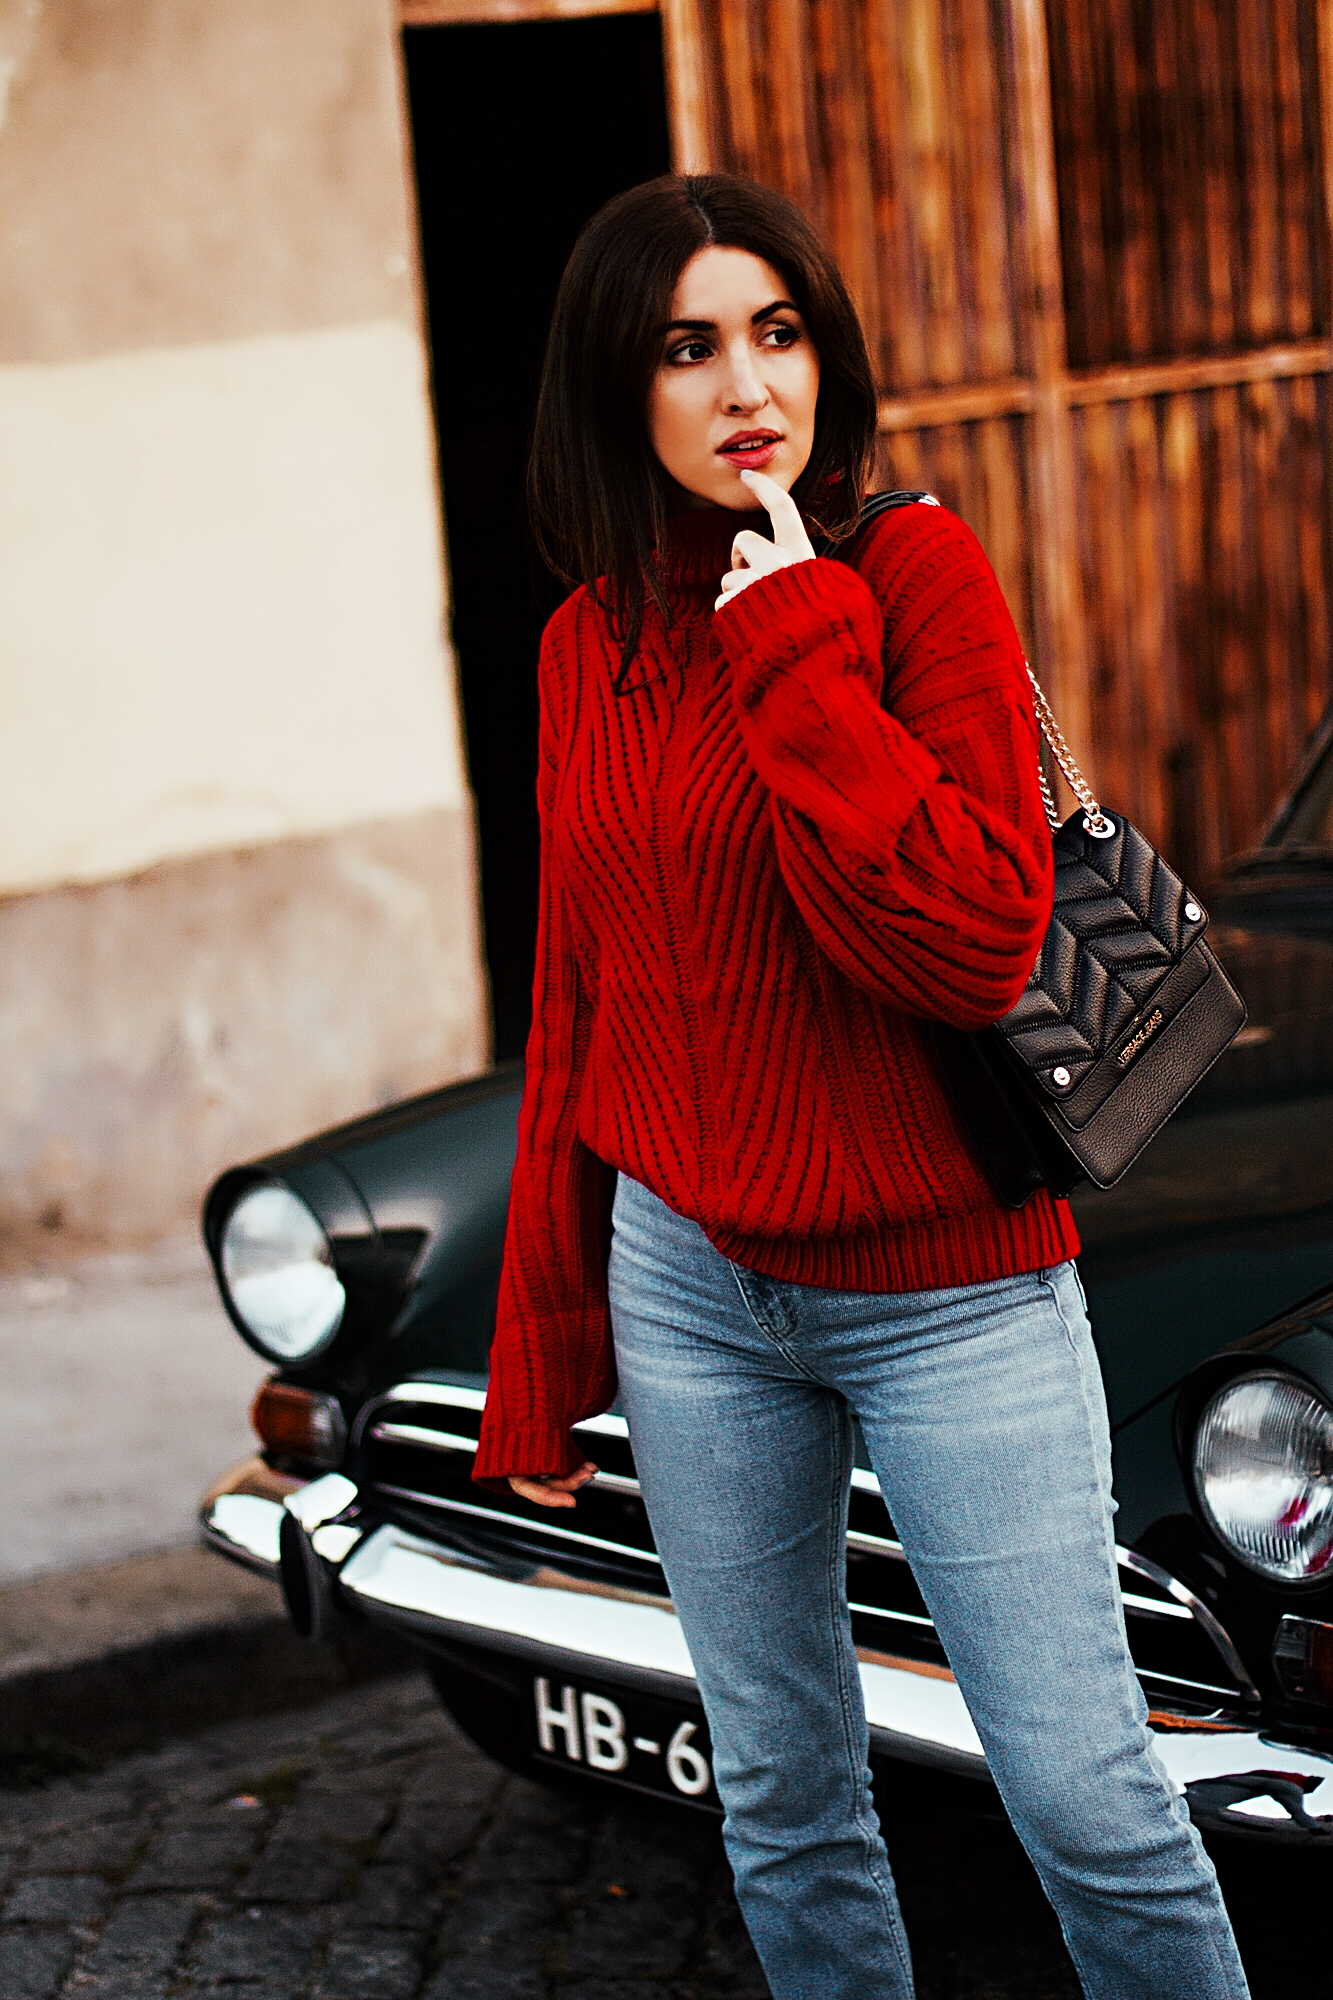 Kate Caviar x Red Sweater